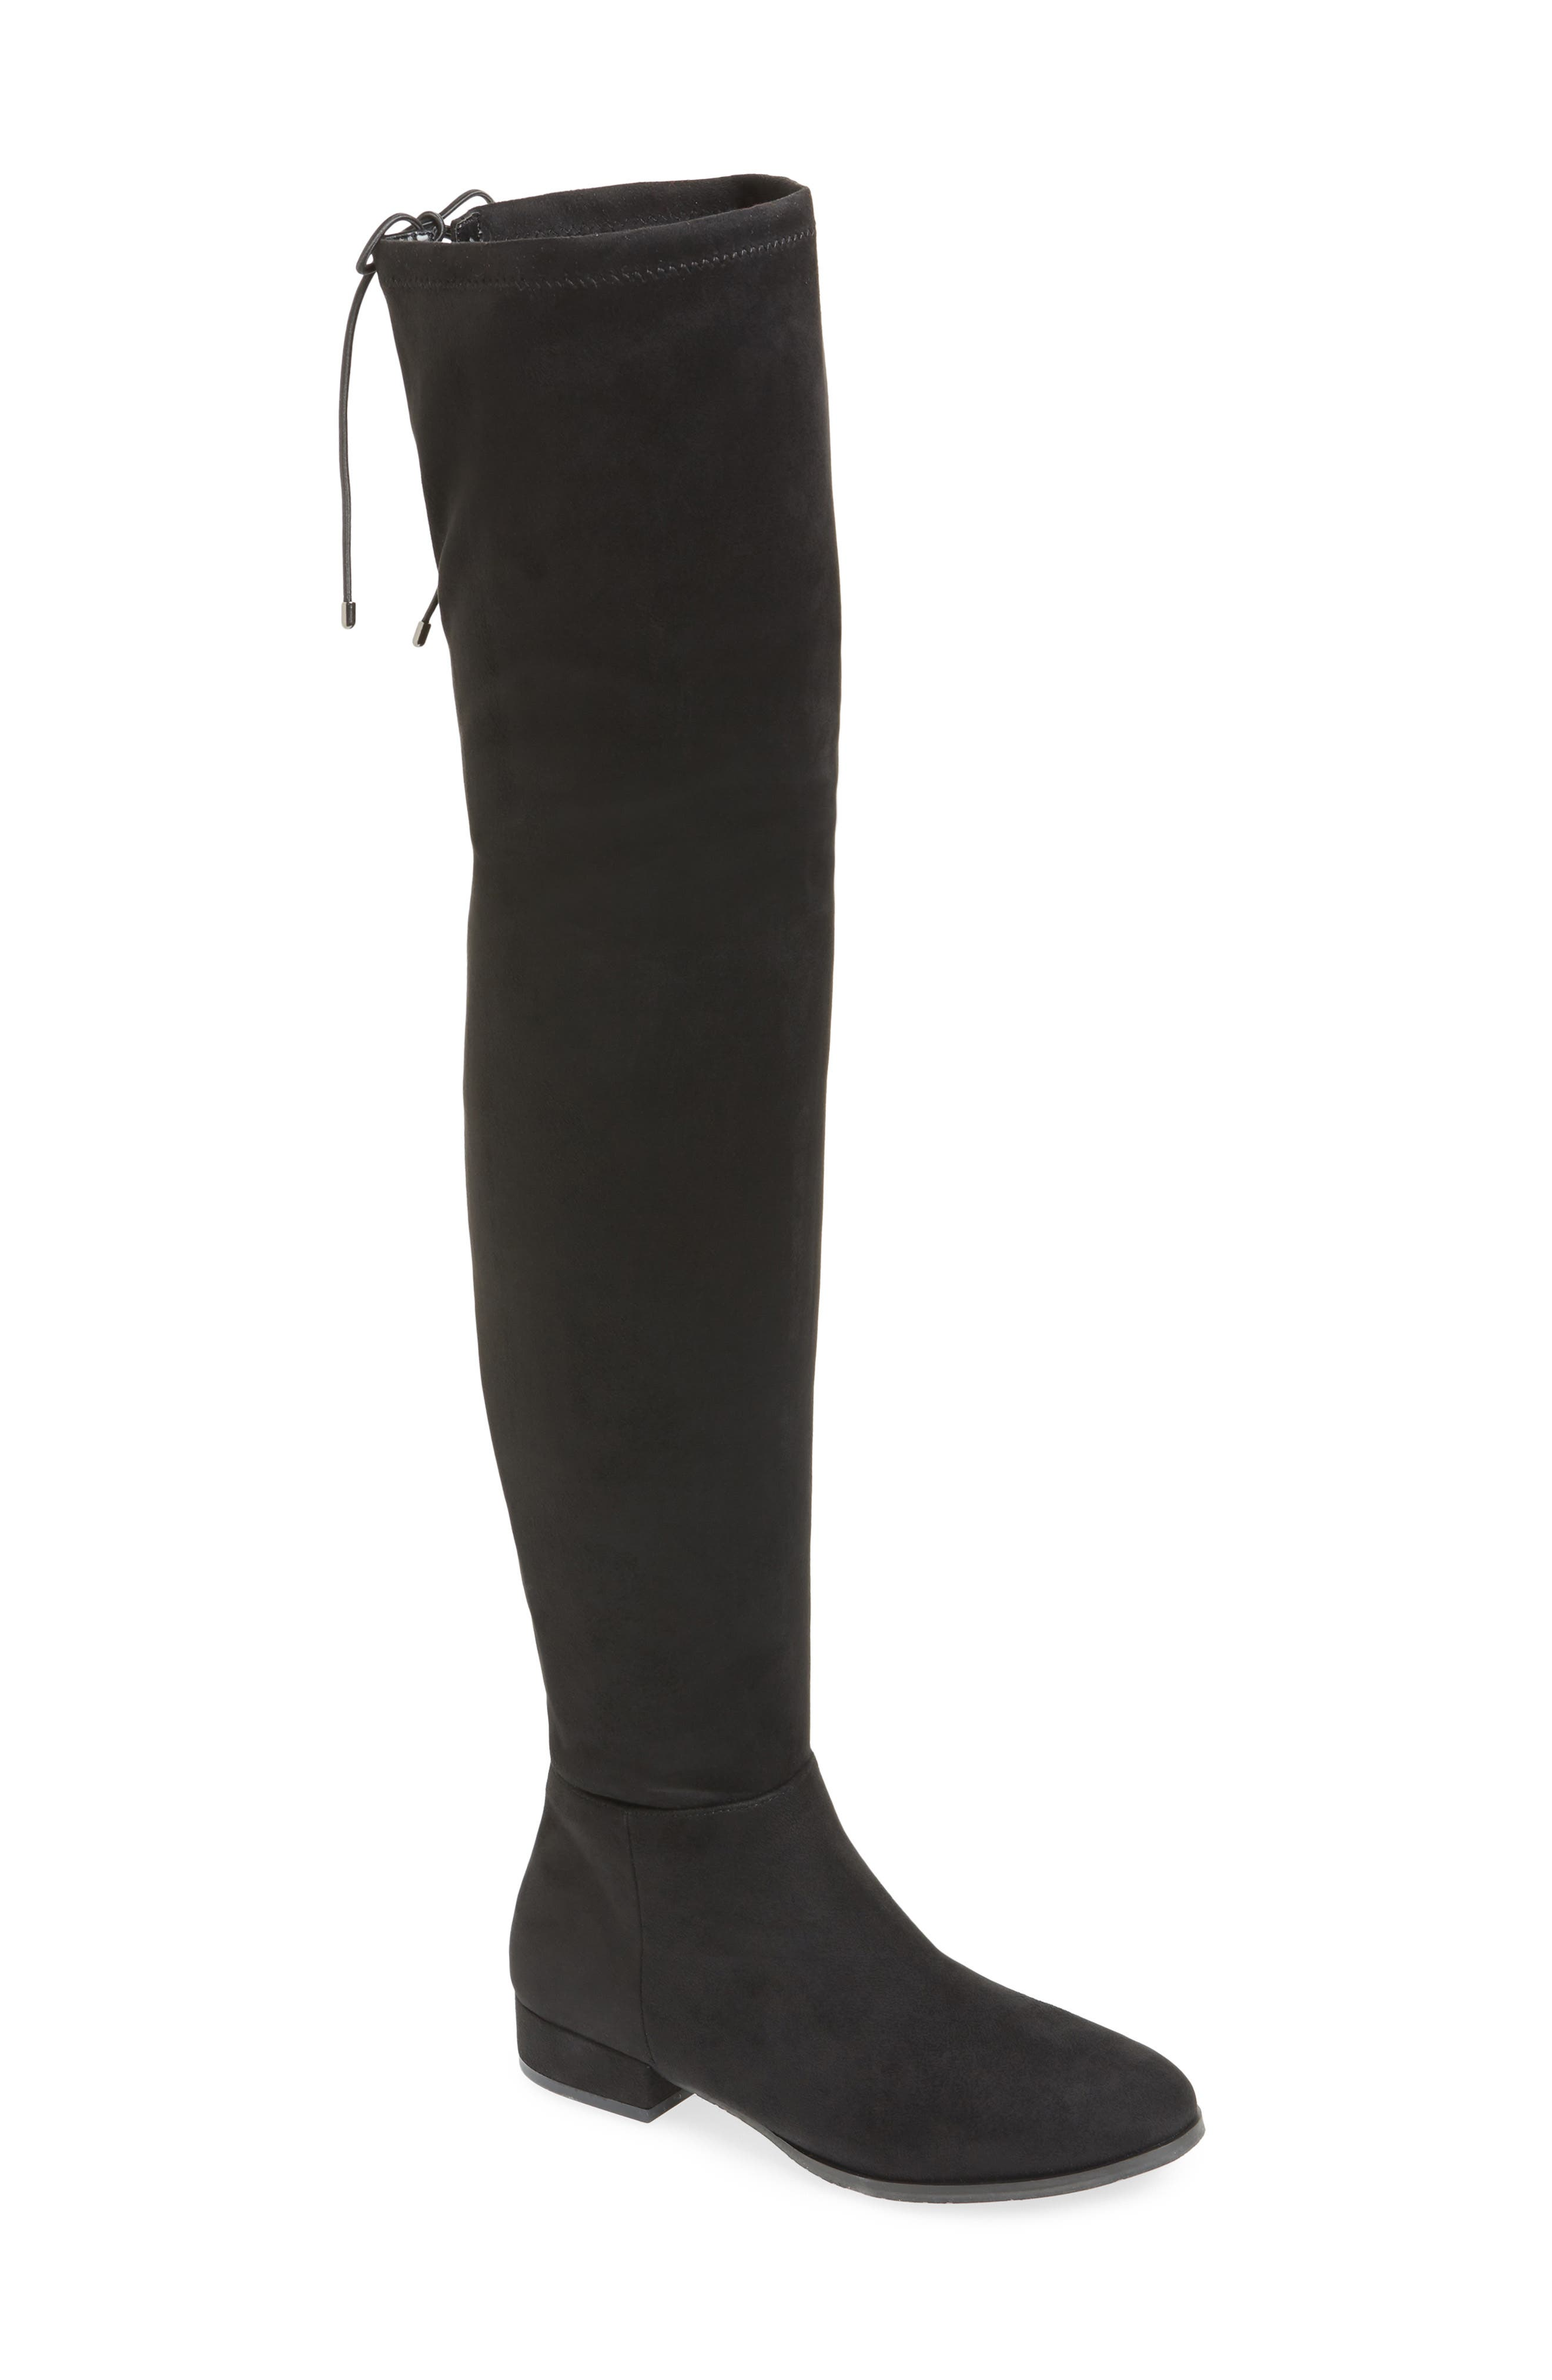 CHINESE LAUNDRY, Richie Knee High Boot, Main thumbnail 1, color, 001